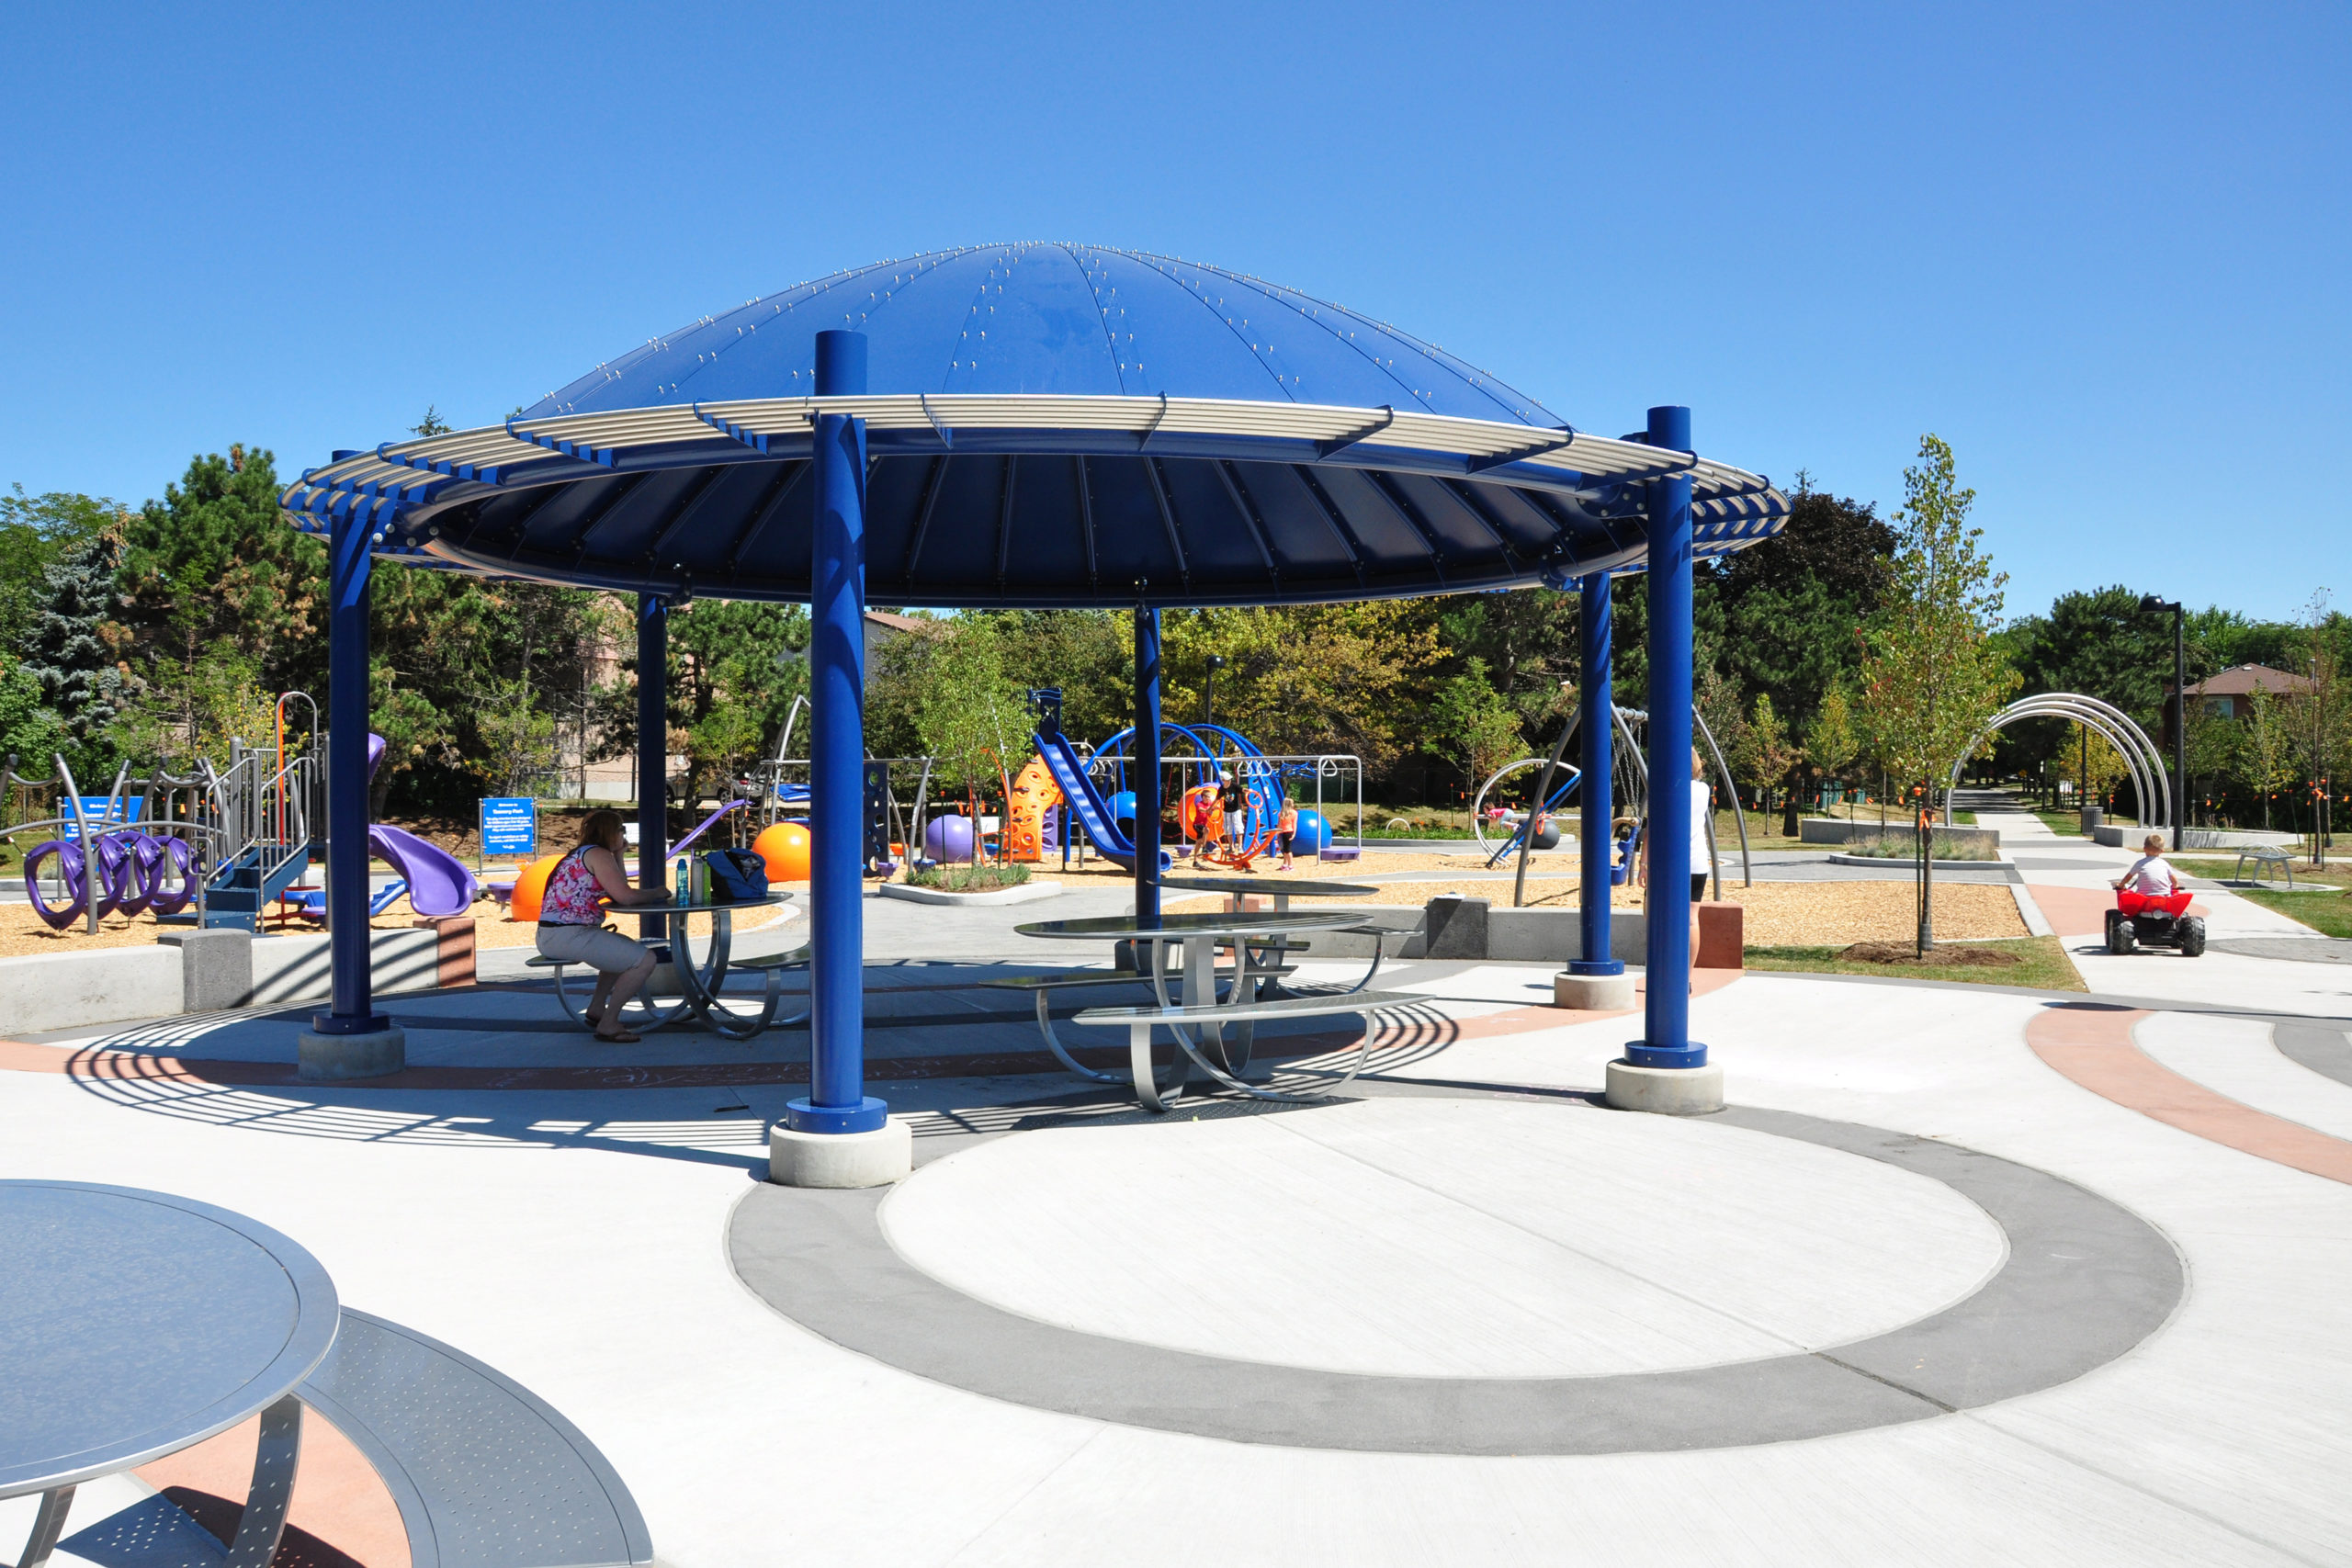 Shade structure with childrens playground.